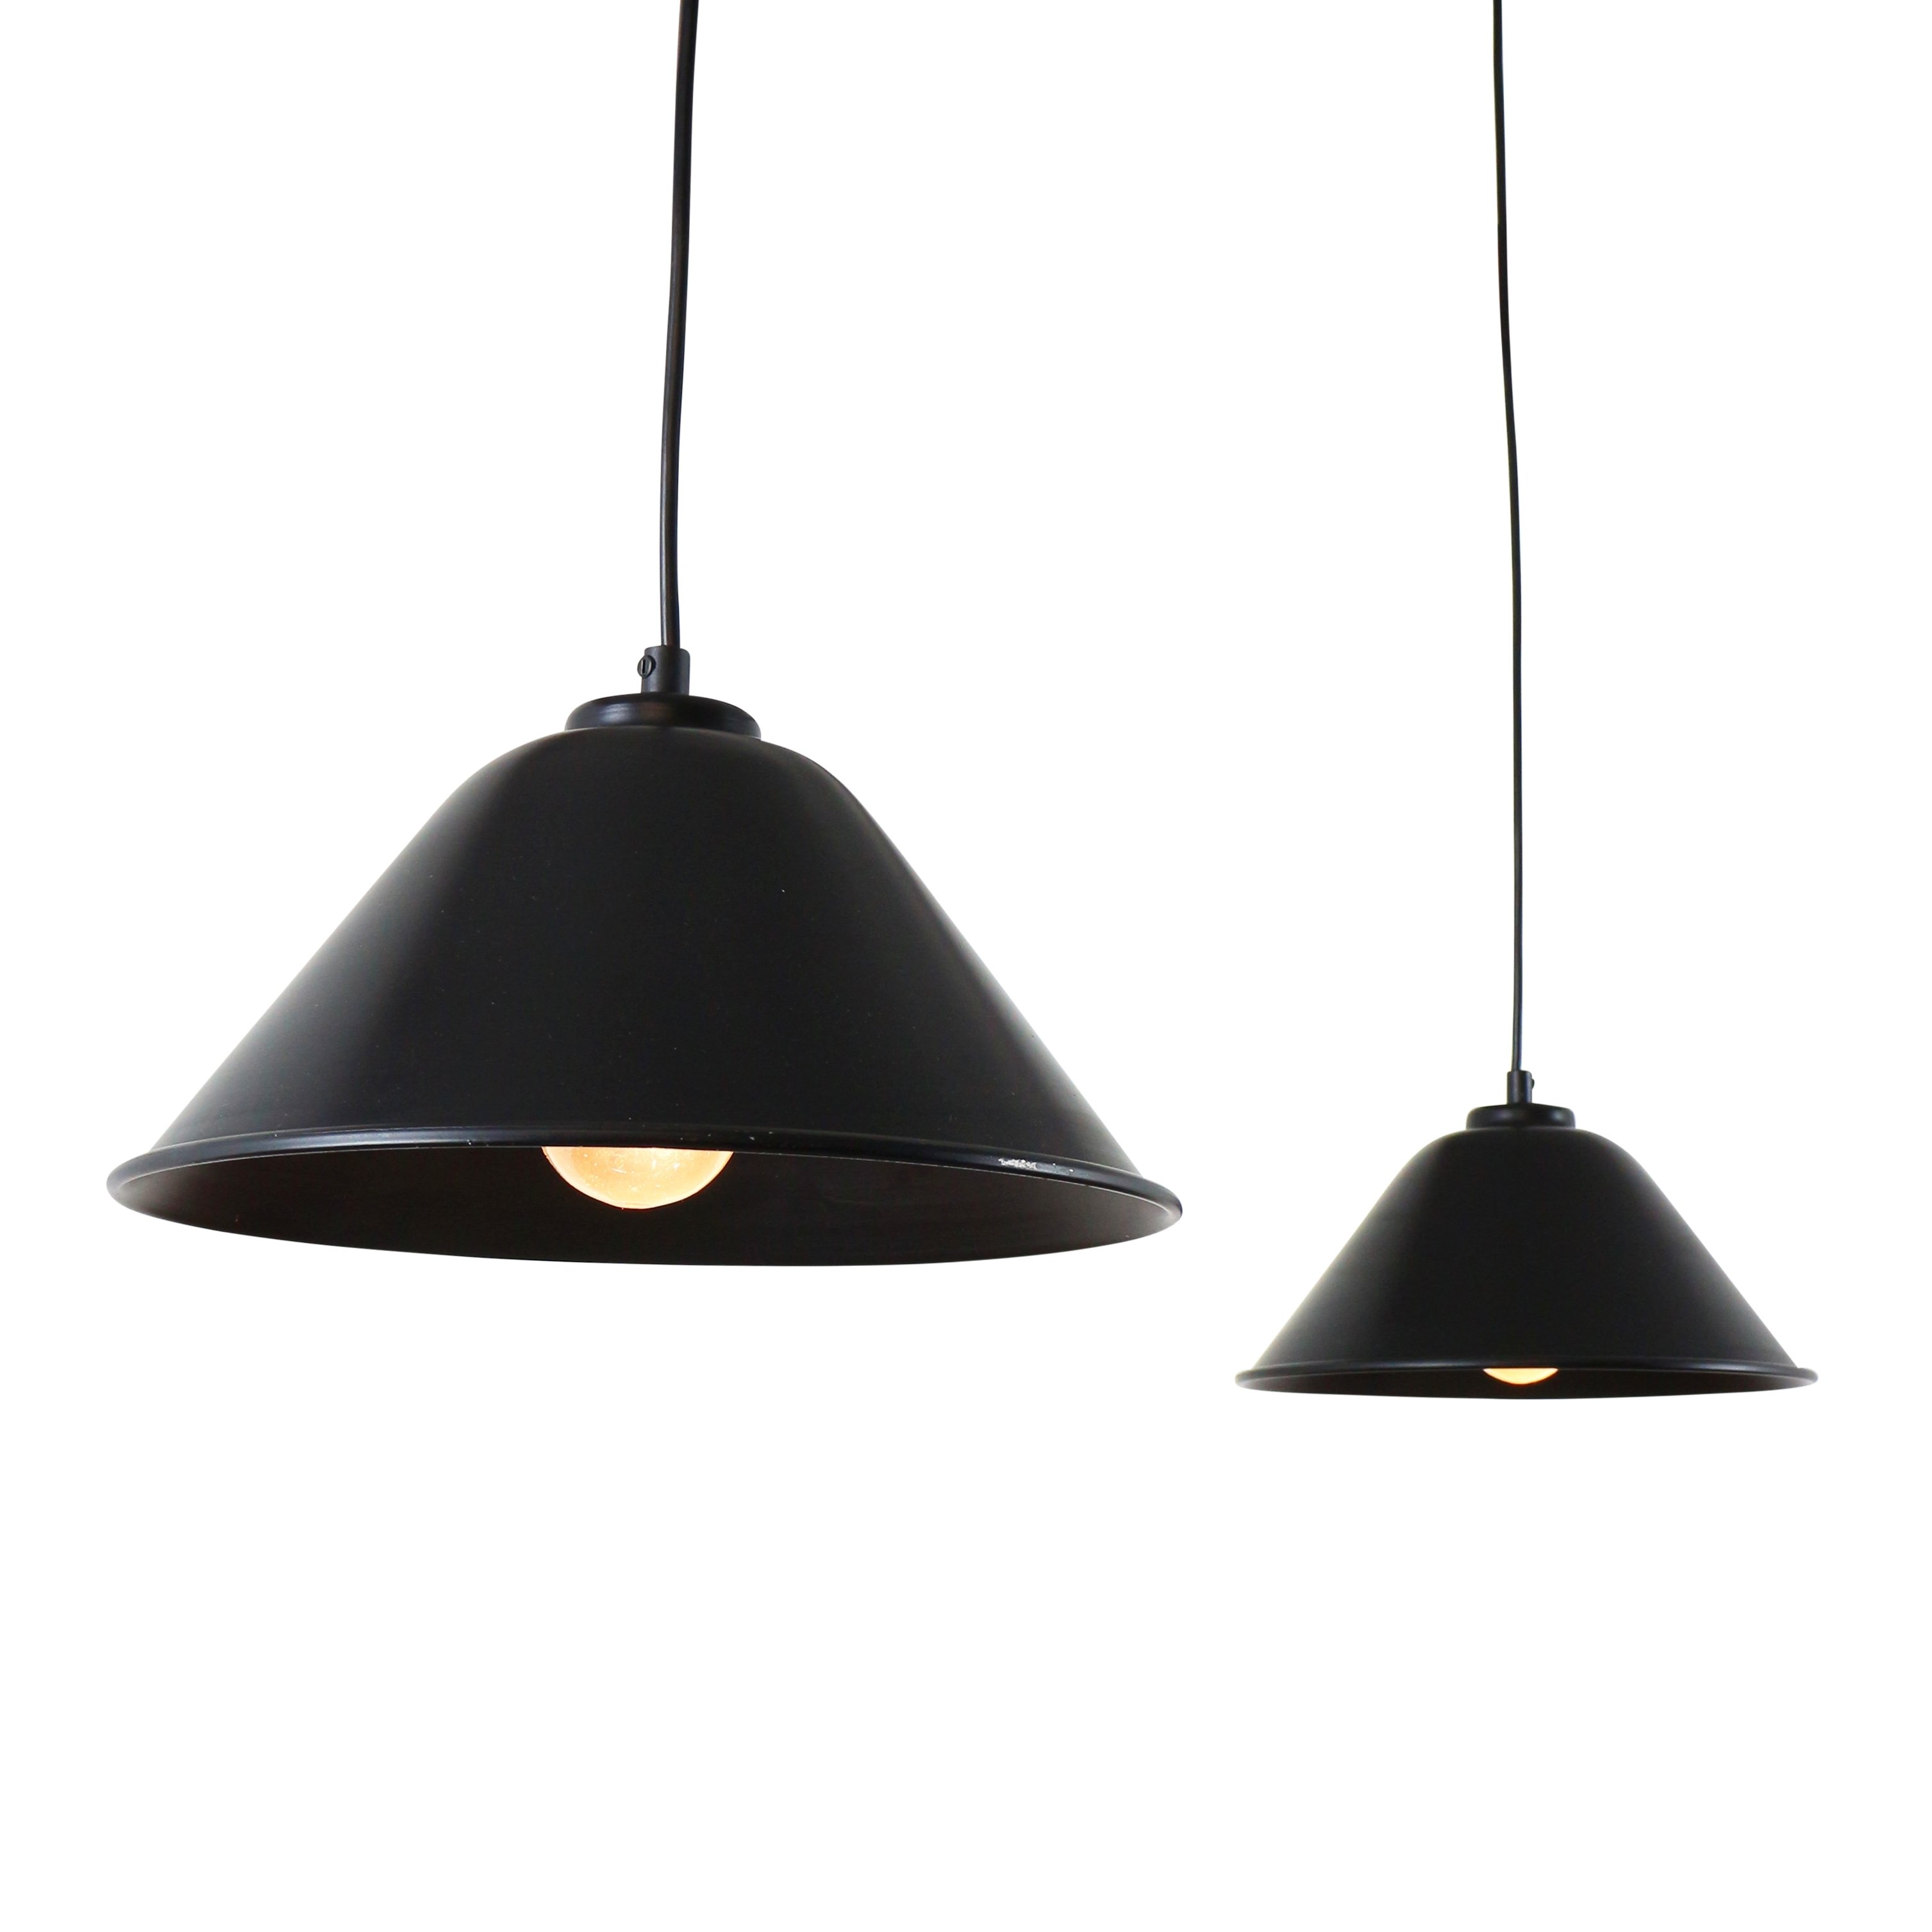 Pair Of Black Metal Pendant Lights With White Inner Reflector,